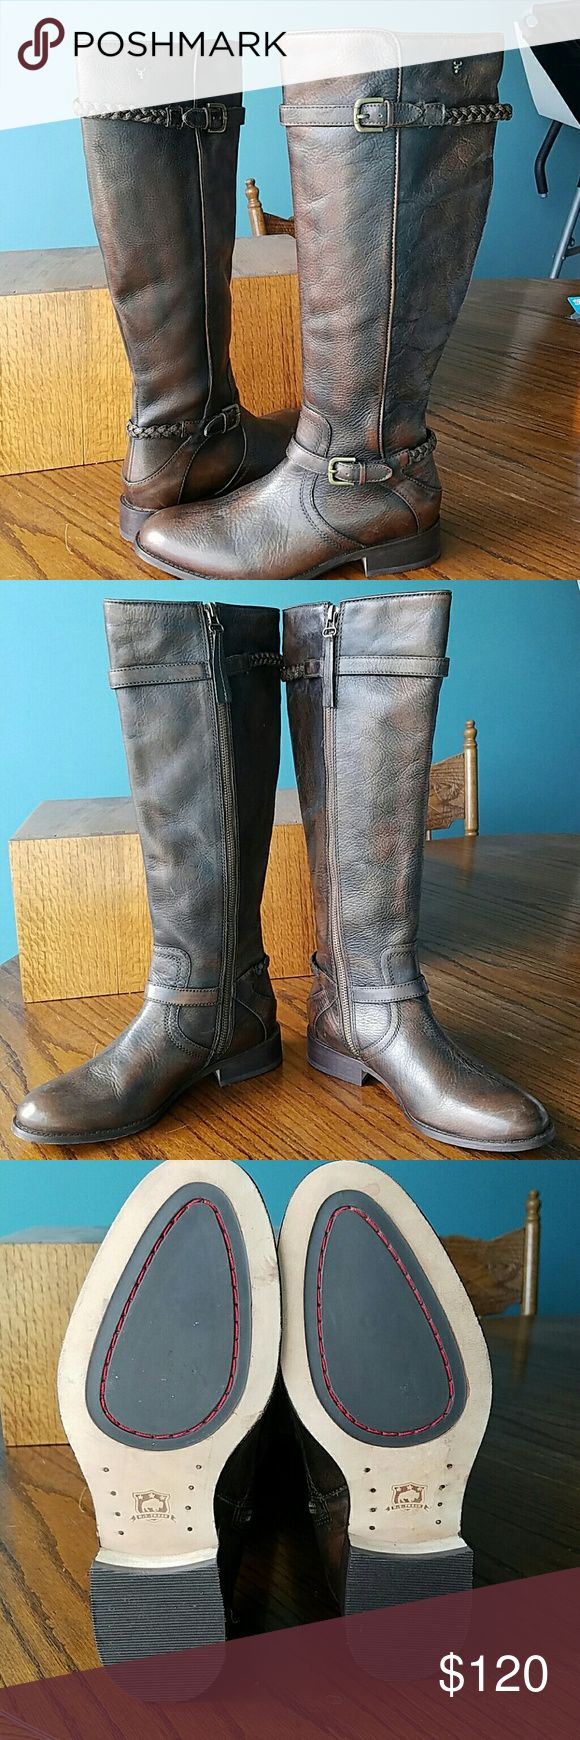 HS Trask Estelle leather riding boots sz 7 These are the real deal. They make my closet smell like a saddlery. Bought at Nordstrom for a insane amount of money, and have never worn because I'm afraid I'll mess them up. Can't stand to see them sit. Please no low balling, these are worth every penny. Check out my other auctions, too. Italian brush-off leather upper with braided leather straps Side-zip closure Microfiber lining and sock Memory foam-cushioned insole. Antiqued leather sole with…